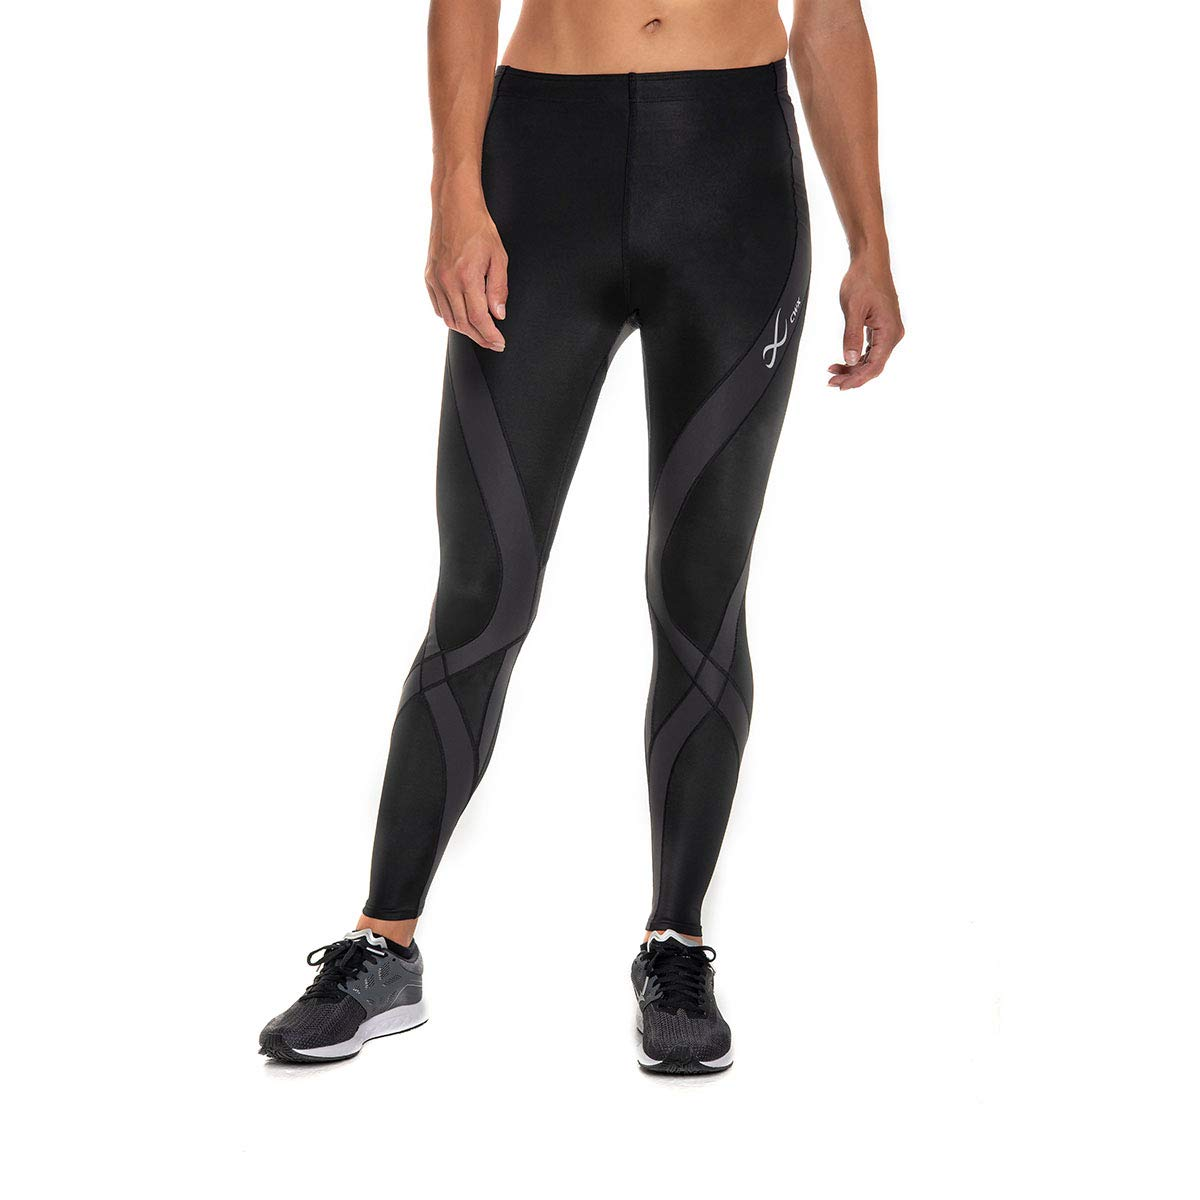 CW-X Women's Pro Running Tights,Black,Small by CW-X